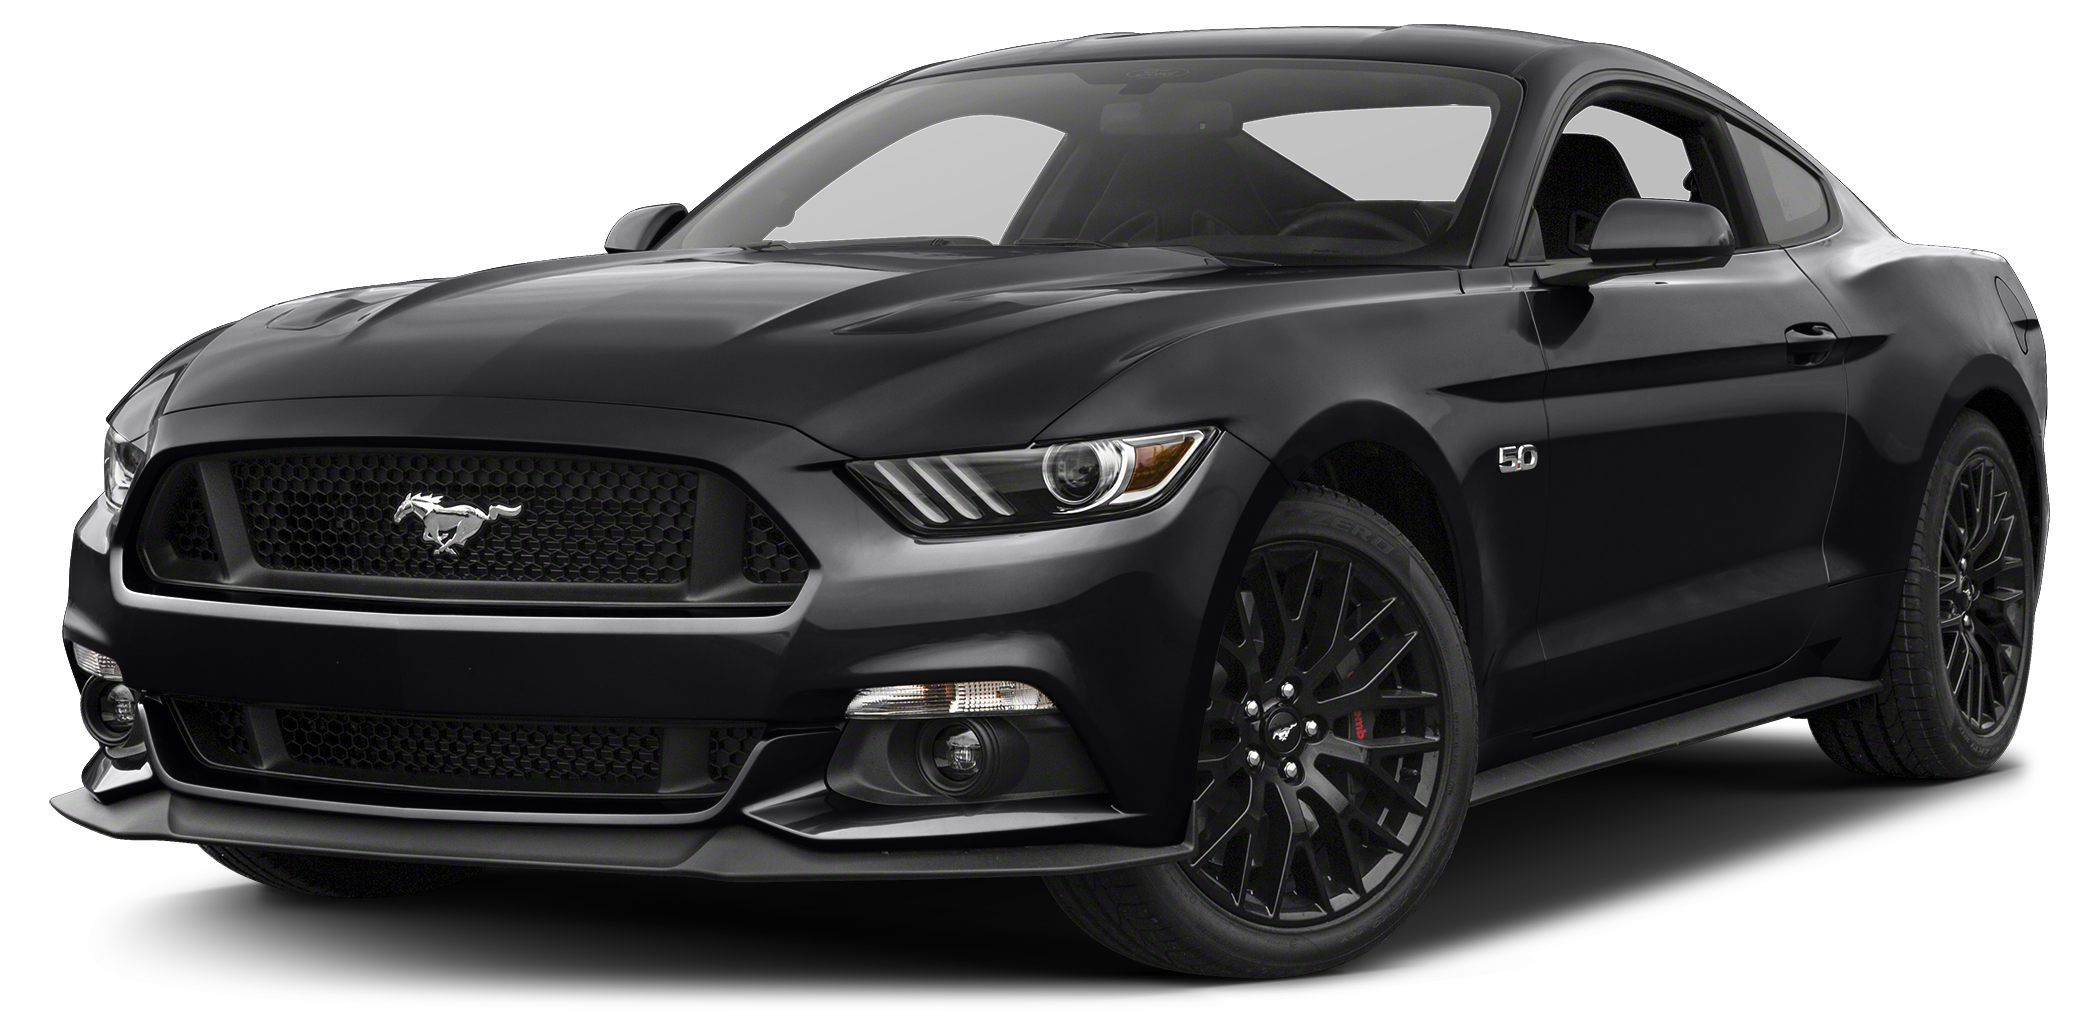 2017 Ford Mustang Gt Premium 44270 Cars More